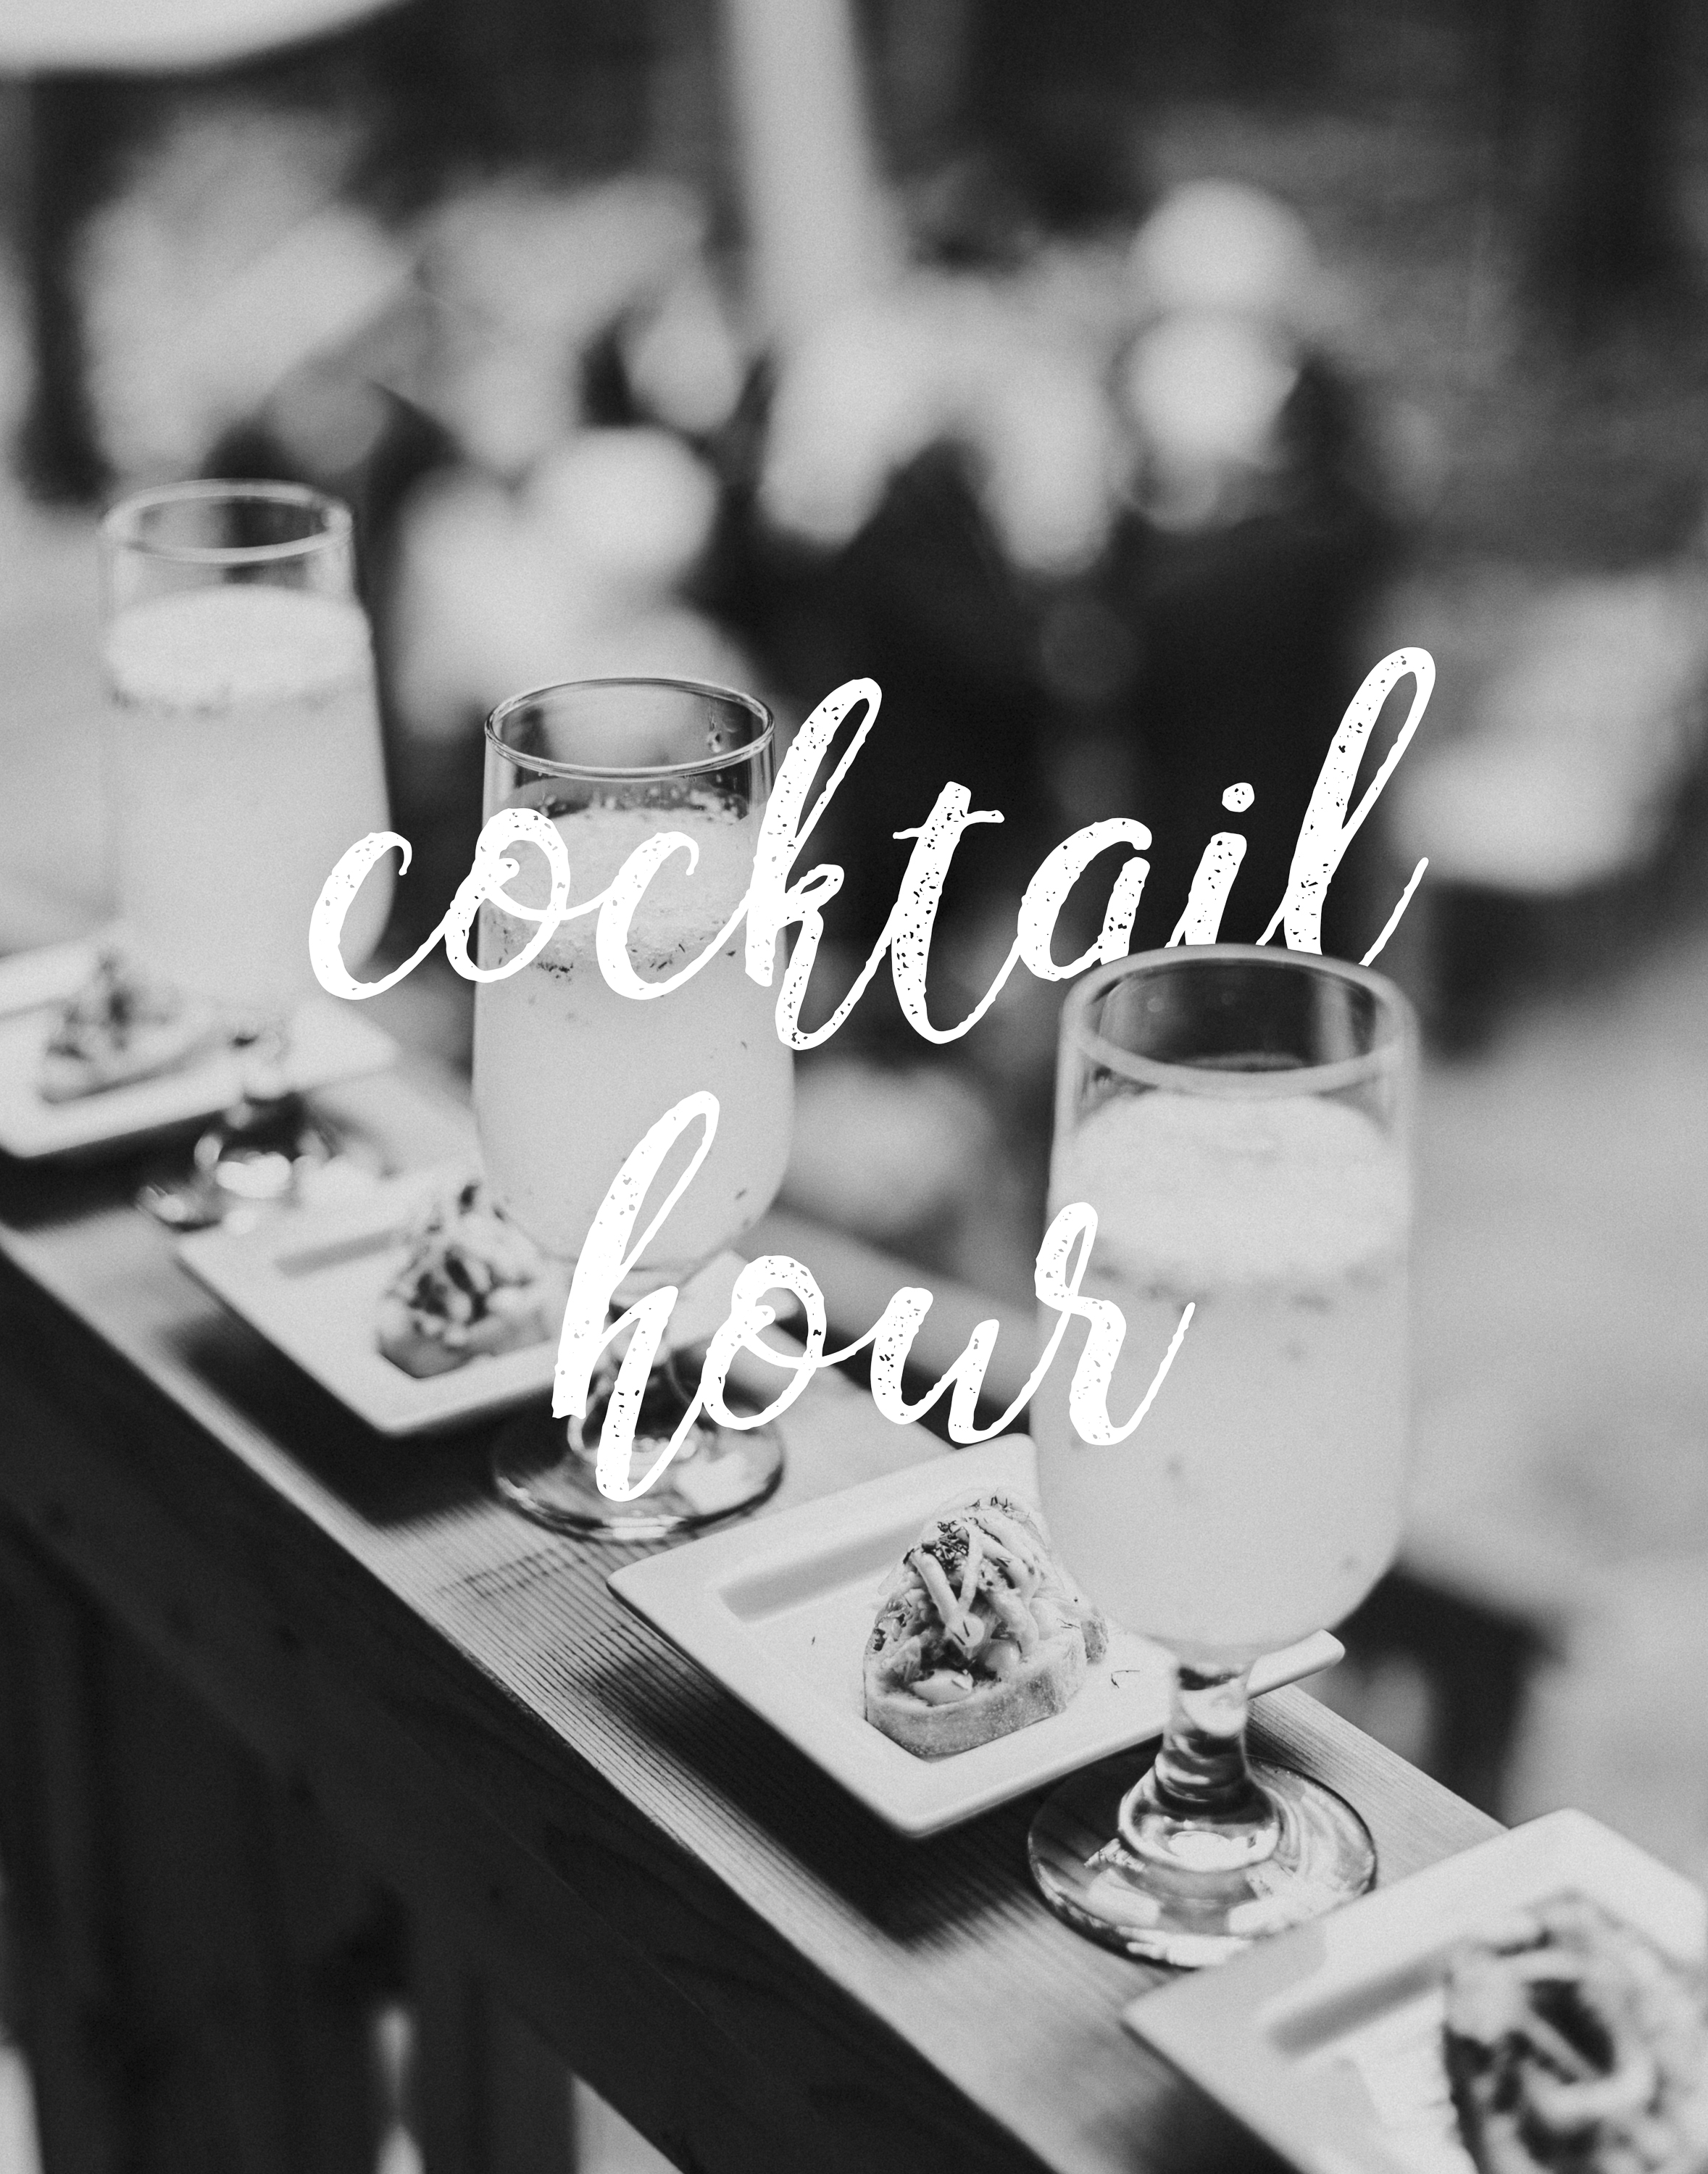 Cocktail hour Typography.jpg